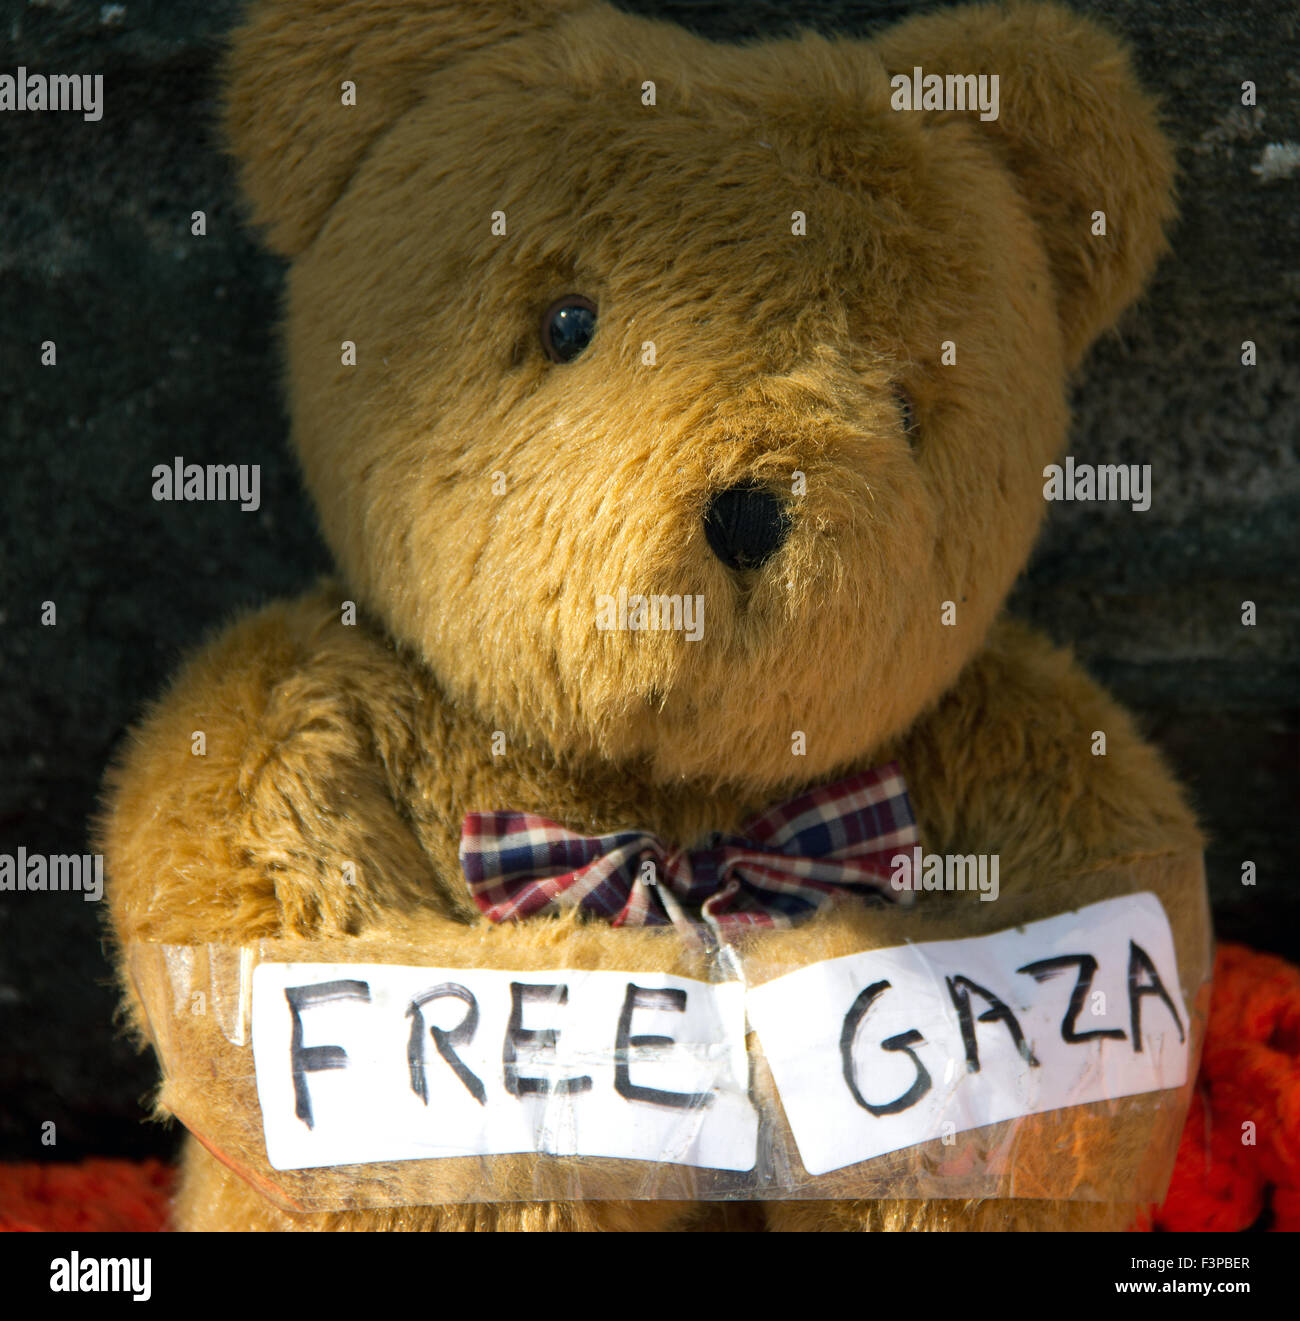 Free Gaza teddy bear - Stock Image